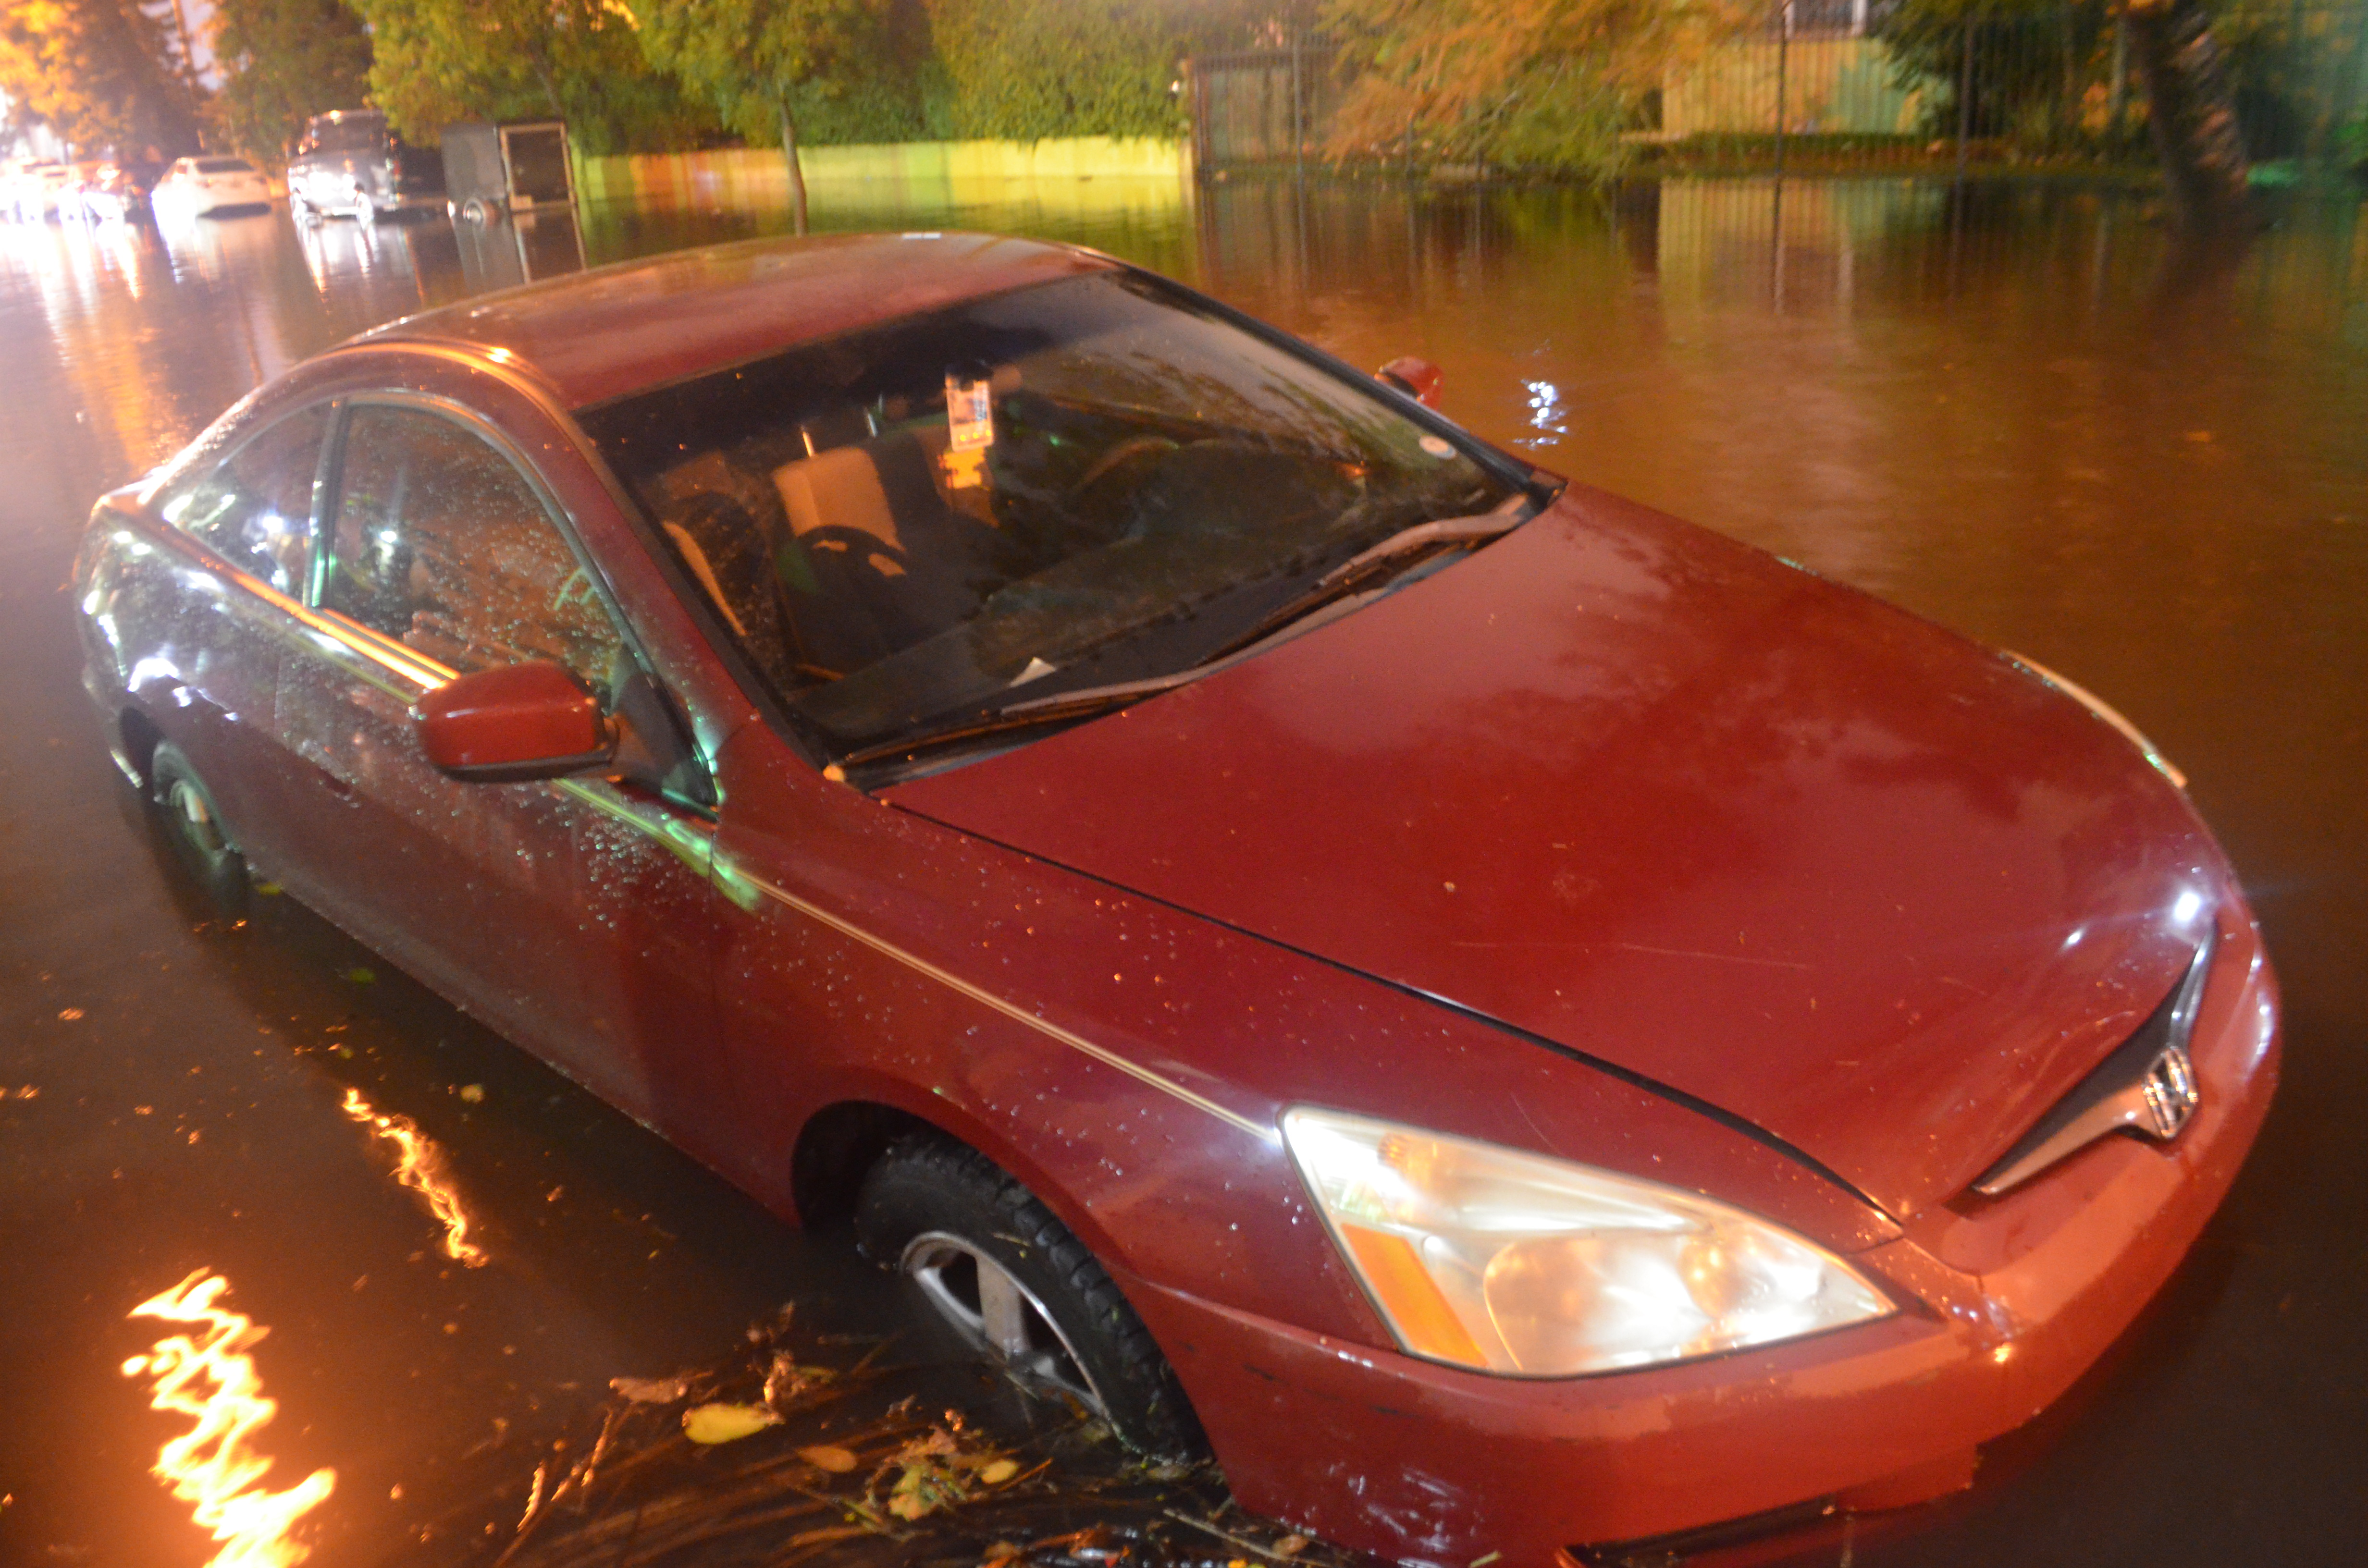 October 15 night 4.0 ft tide plus rain good one flooded car Edgewater, Car, Vehicle, HQ Photo